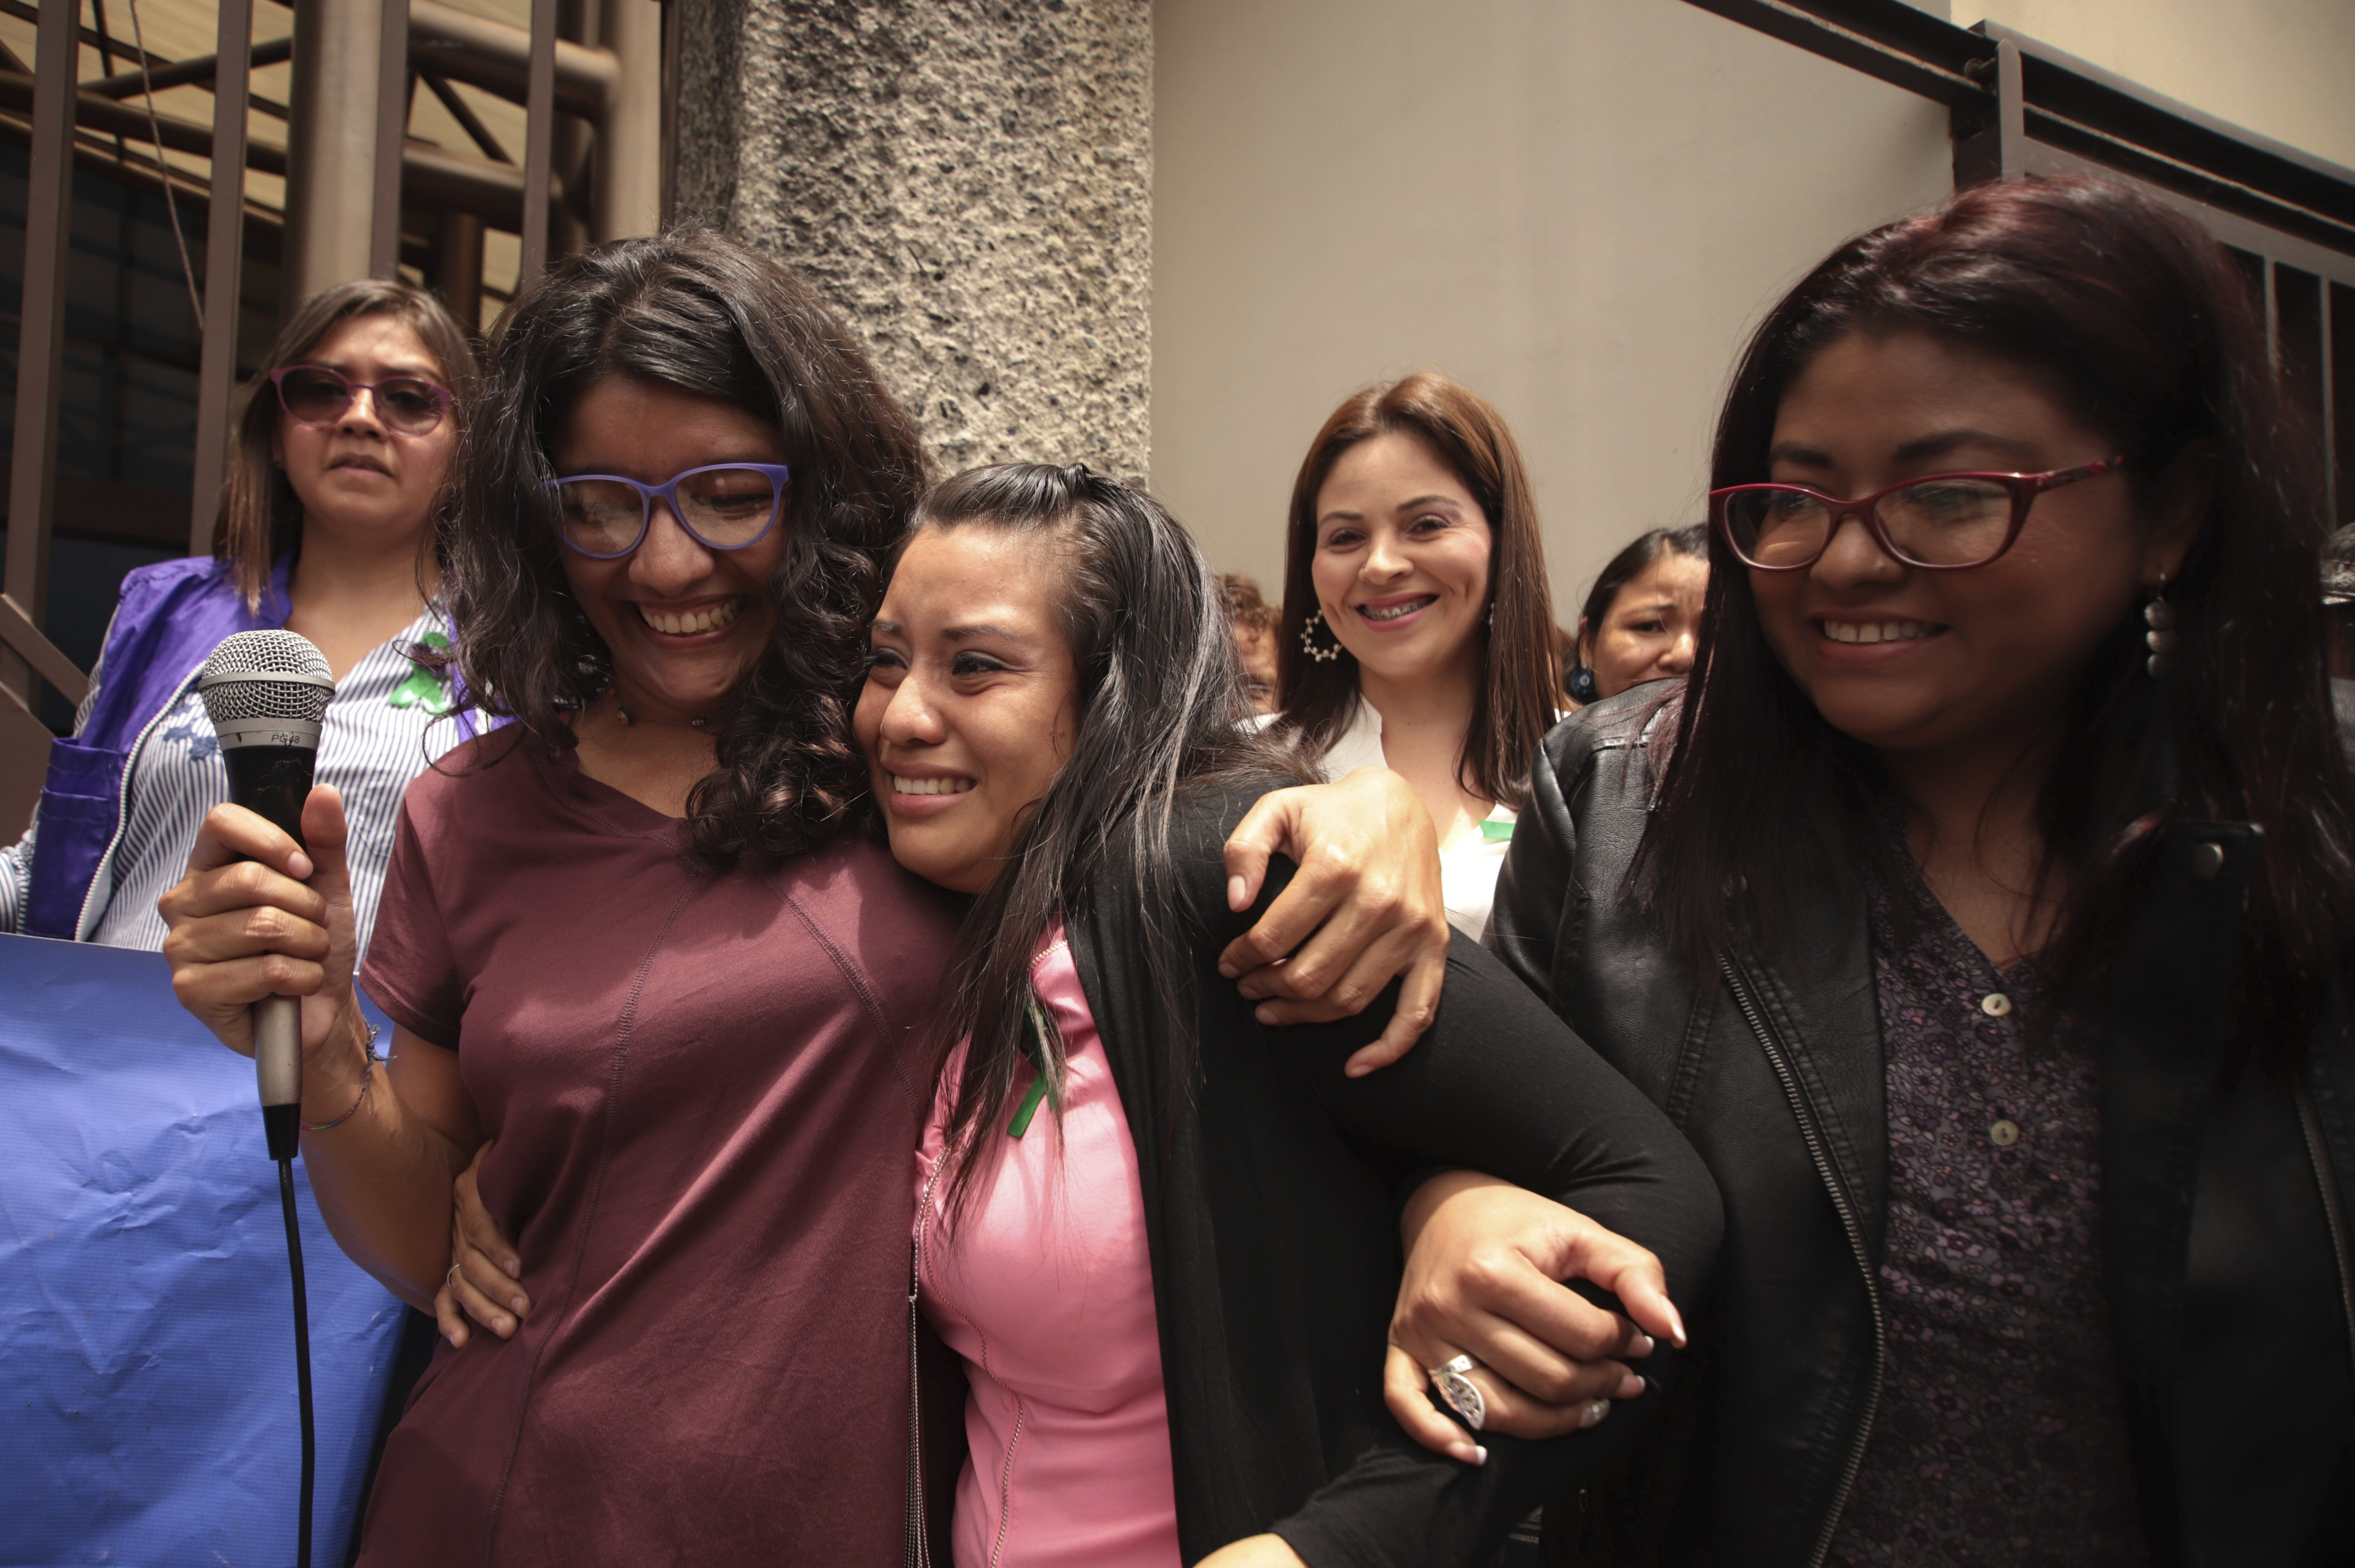 El Salvador Woman Who Lost Her Pregnancy Is Acquitted Of Homicide In Retrial